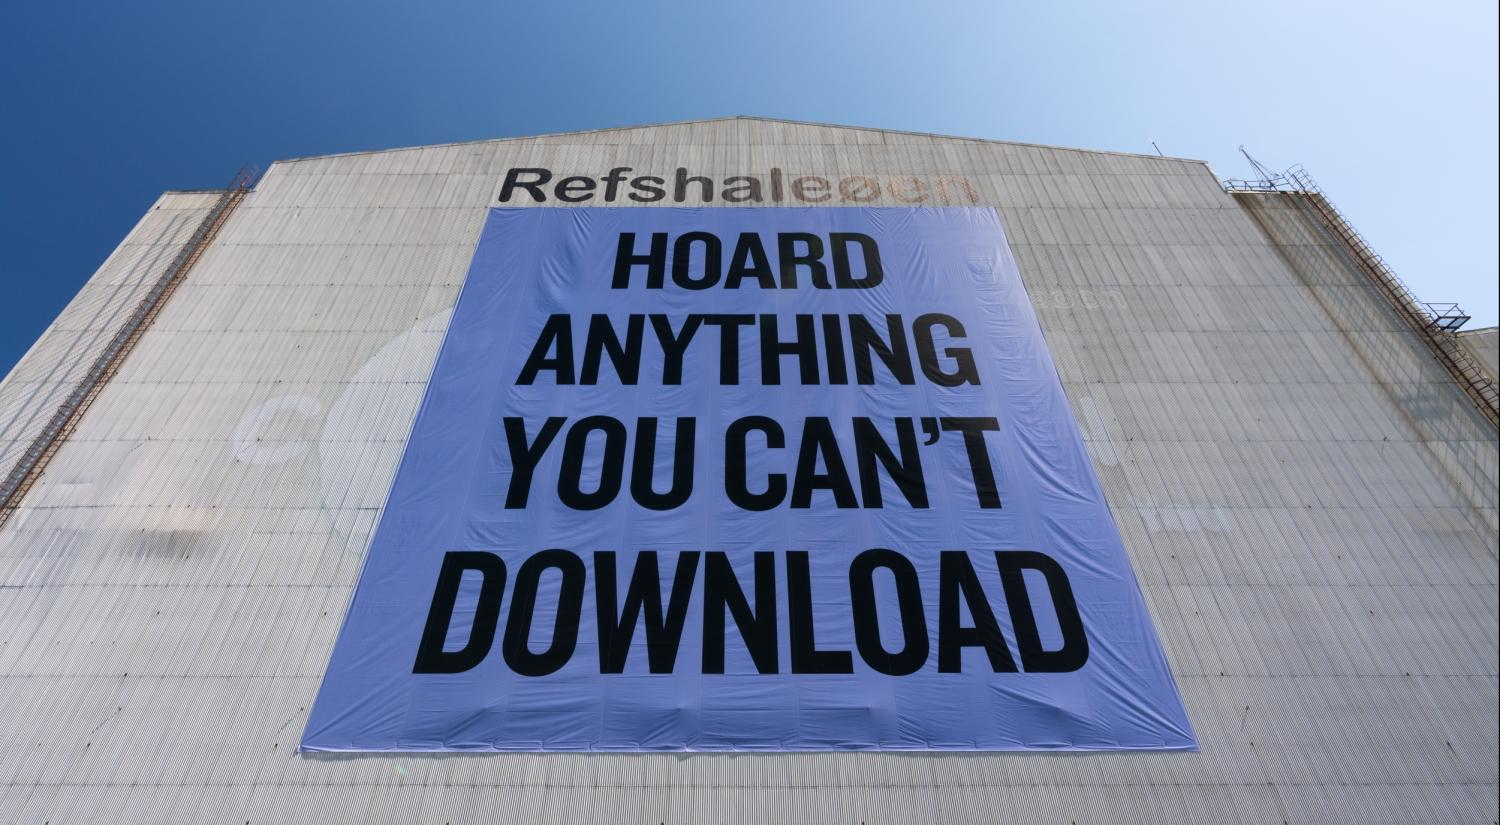 Douglas Coupland, Hoard Anything You Can't Download, 2013